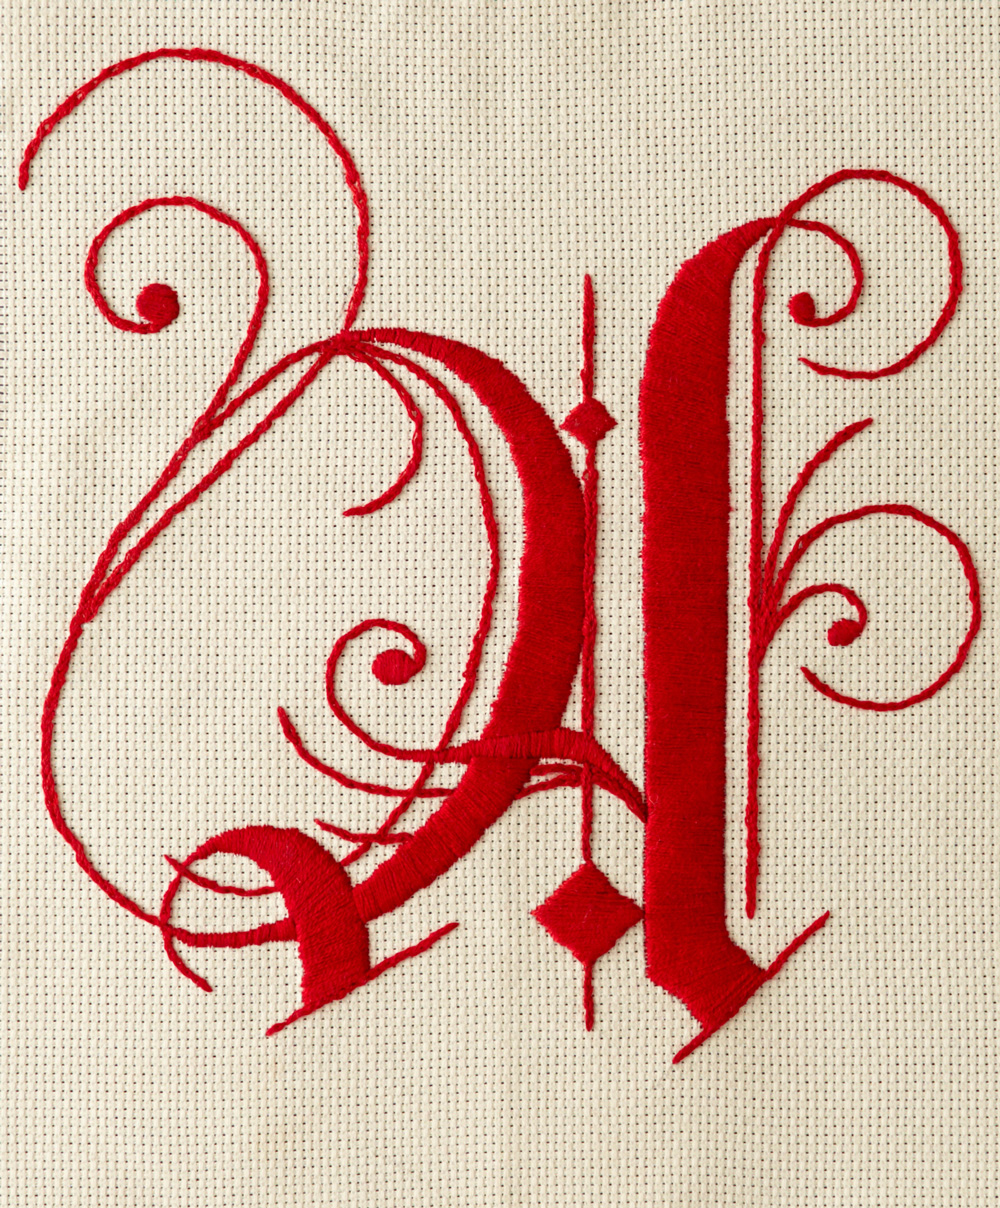 Embroidery for the cover of The Scarlet Letter by Nathaniel Russel. Part of Vintage Classics. Published by Vintage.